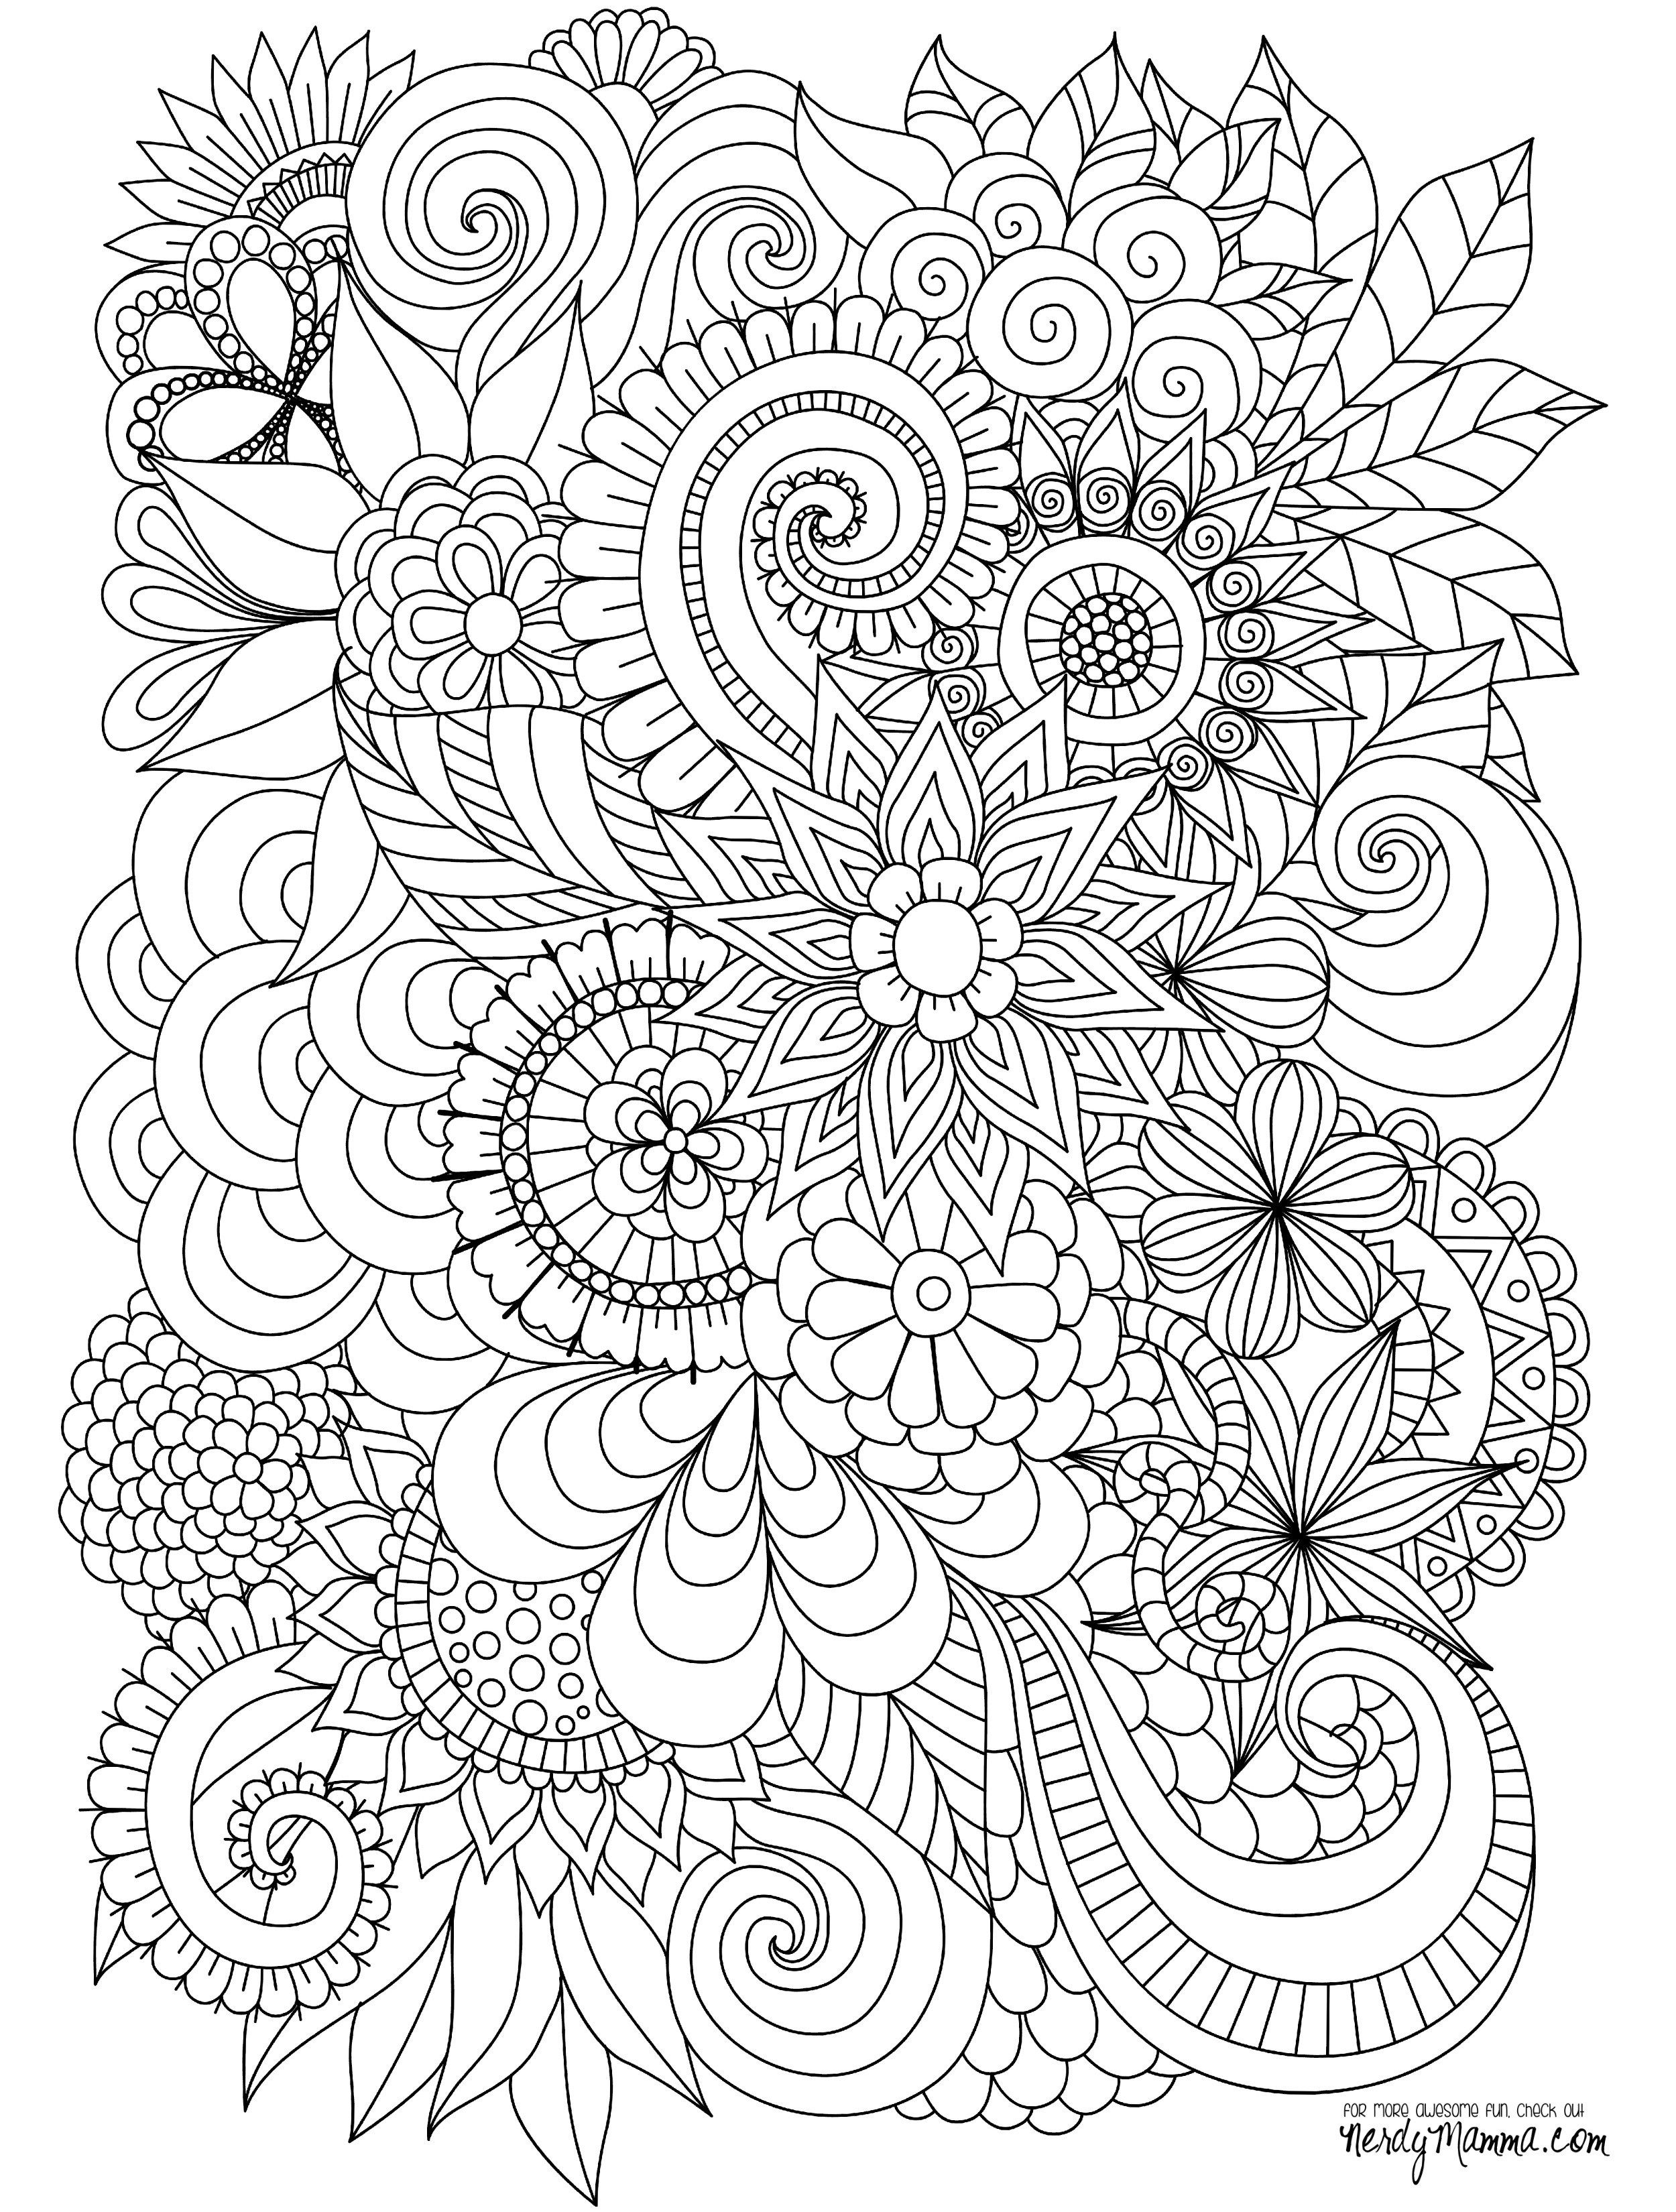 black and white coloring pages for adults adult coloring pageoriginal hand drawn art in black and and for adults black white pages coloring